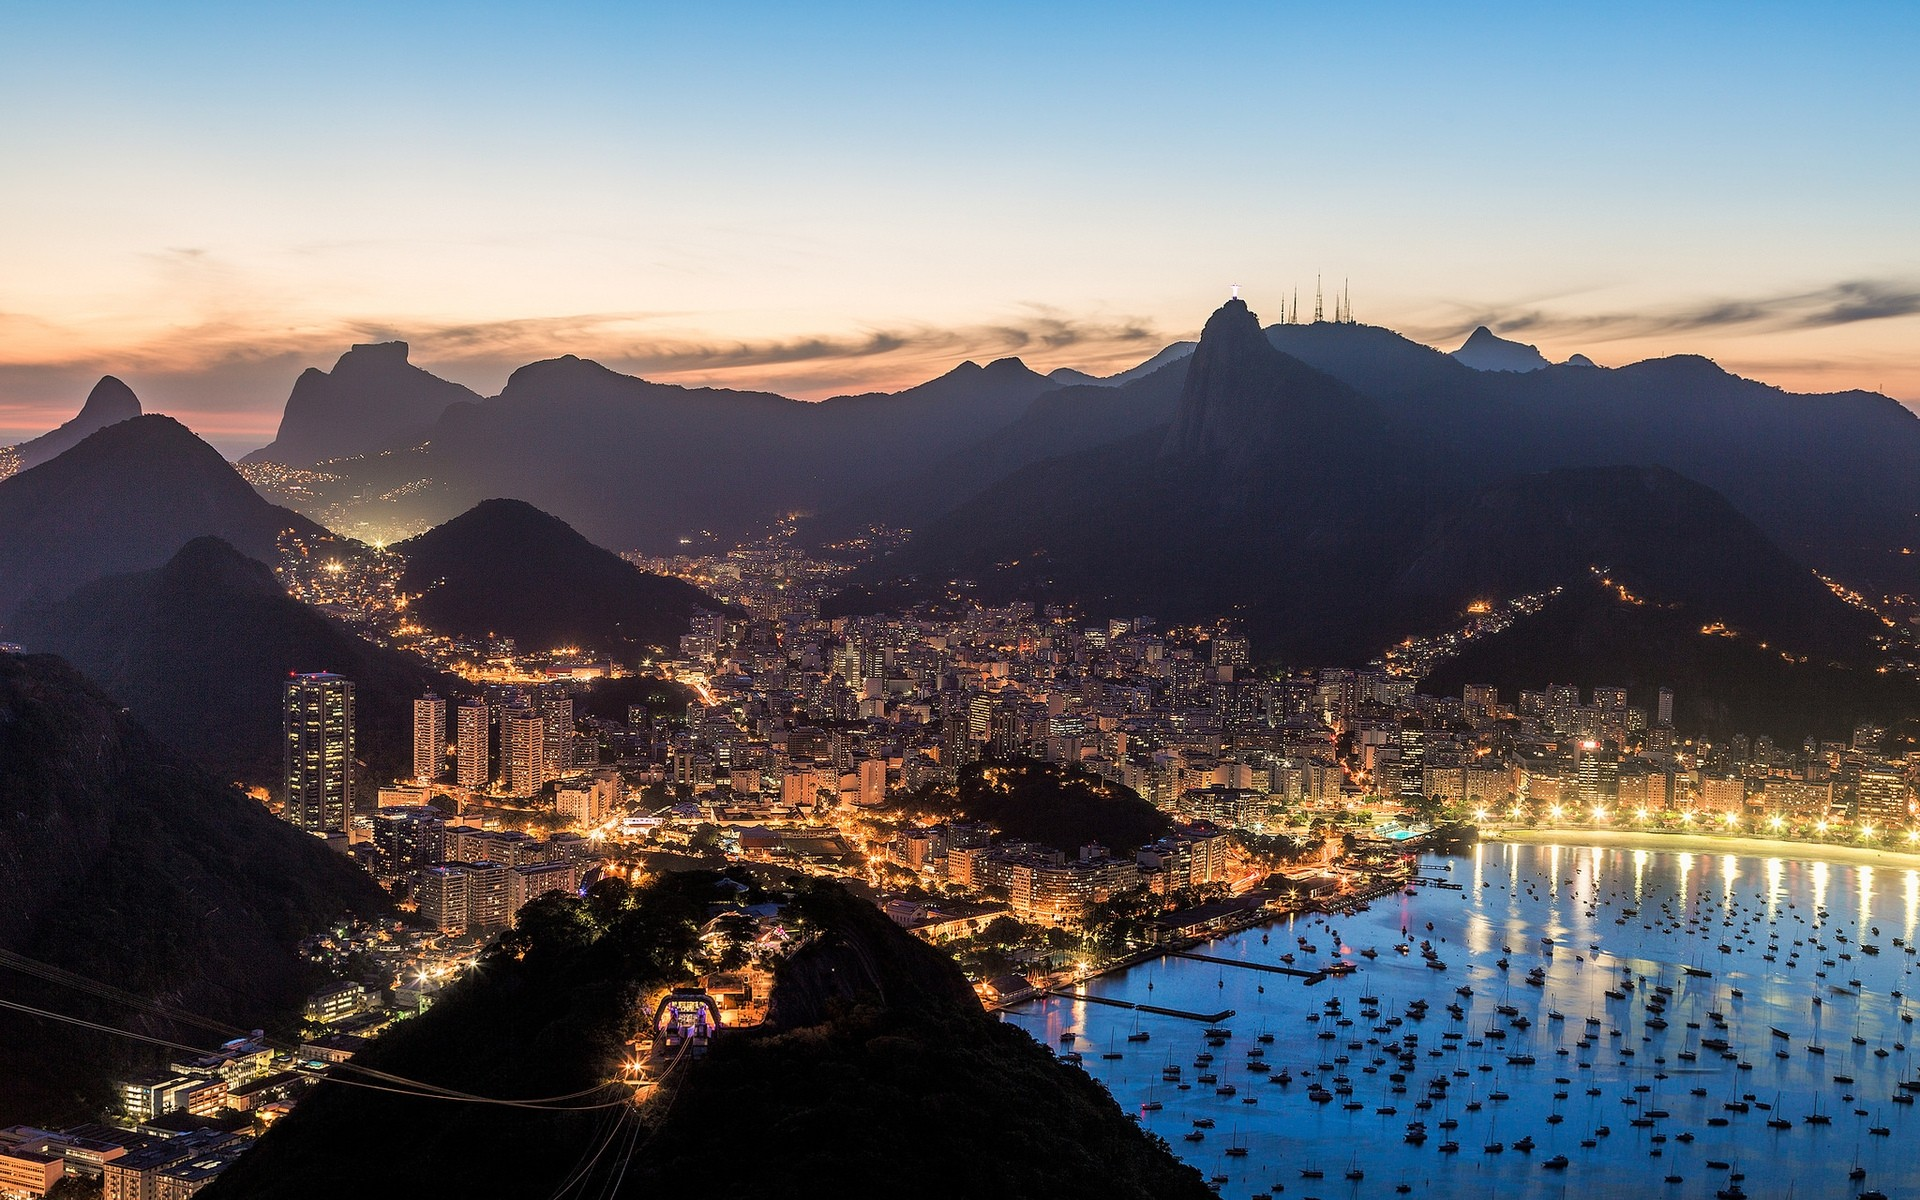 other city sunset water travel city mountain dawn evening architecture snow dusk lake outdoors landscape sky reflection brasil night lights